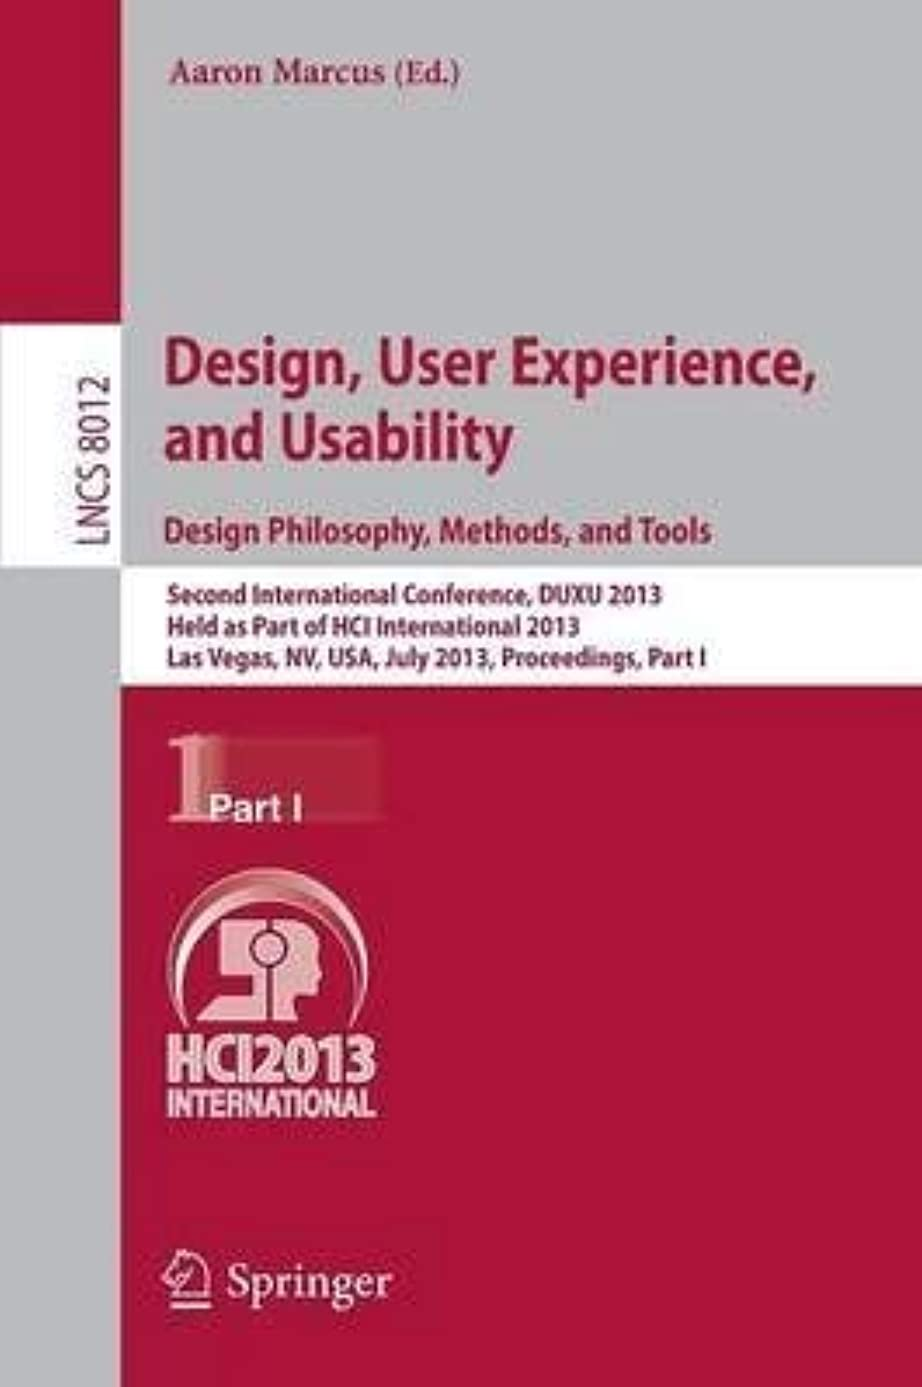 [(Design, User Experience, and Usability: Design Philosophy, Methods, and Tools Part I: Second International Conference, DUXU 2013, Held as Part of HCI International 2013, Las Vegas, NV, USA, July 21-26, 2013, Proceedings )] [Author: Aaron Marcus] [Jul-2013]